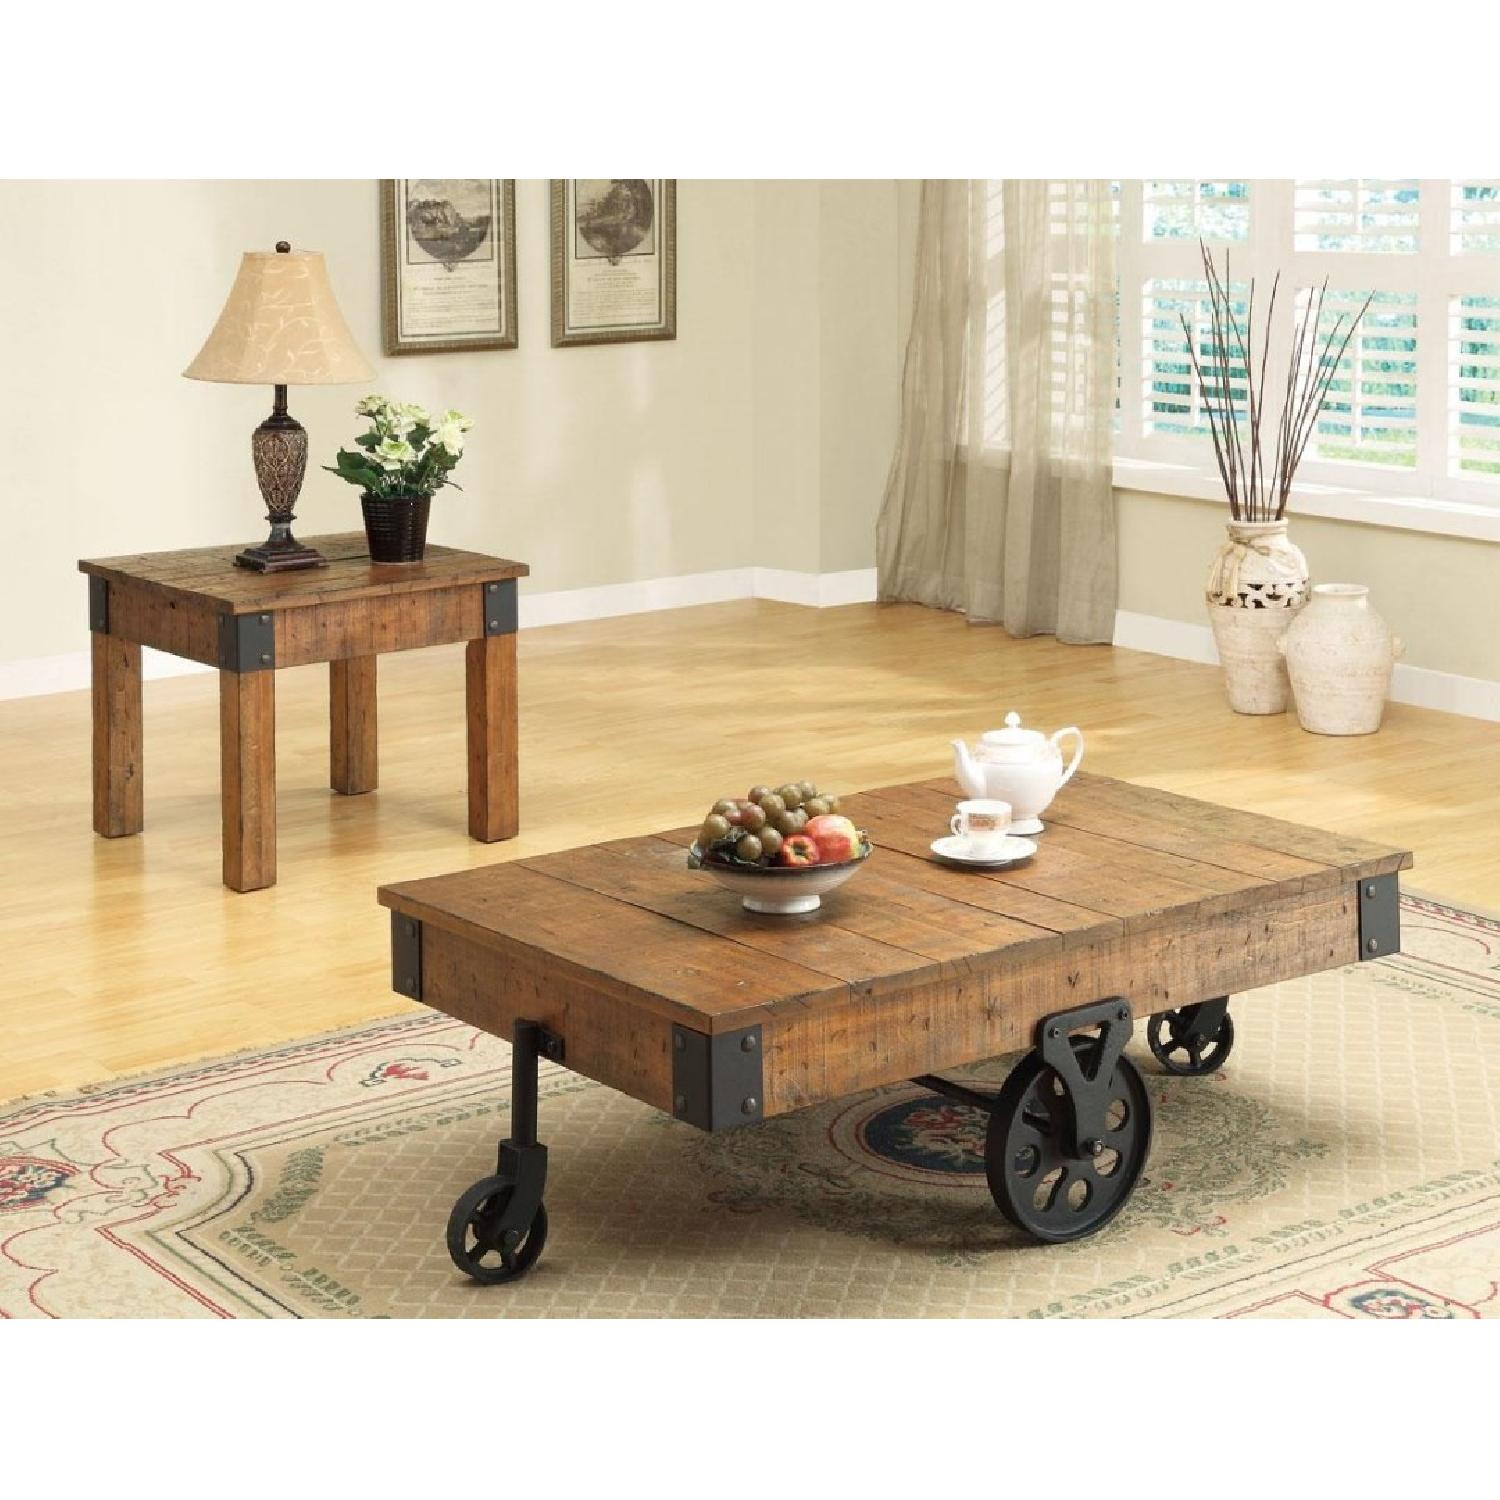 Whimsical Distressed Country Wagon Coffee Table - image-2